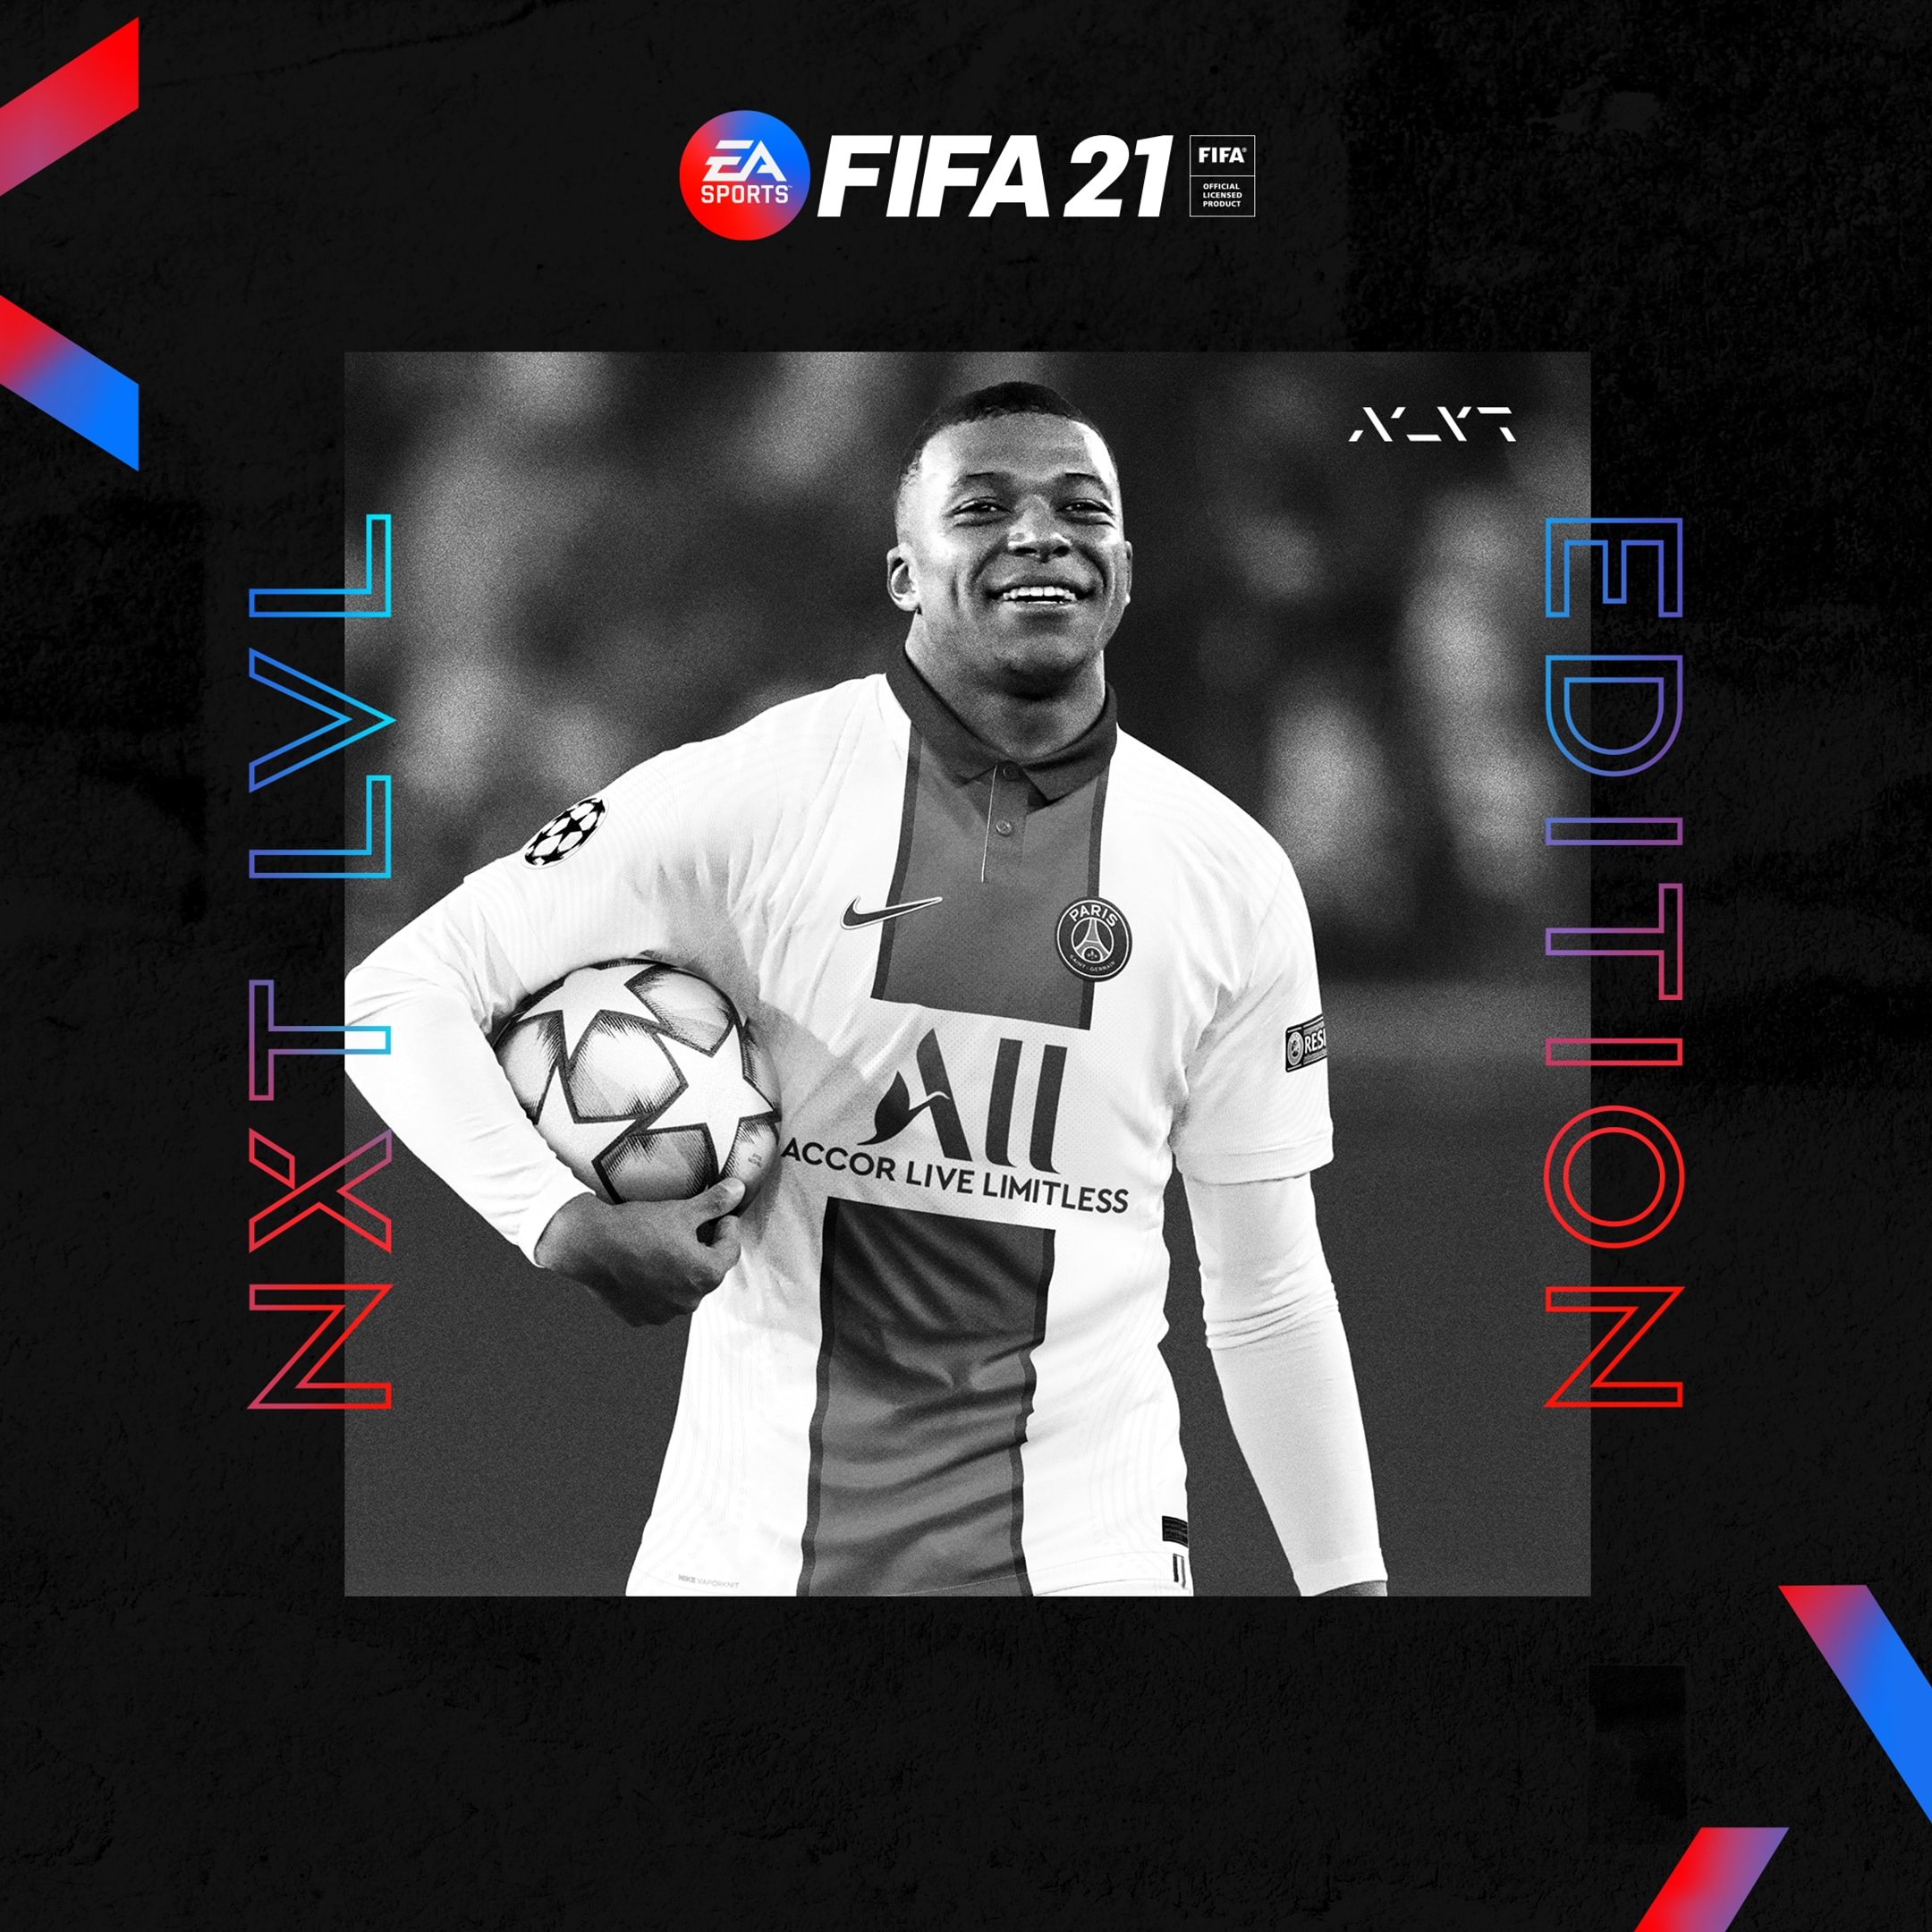 FIFA 21 - Next Gen Launch